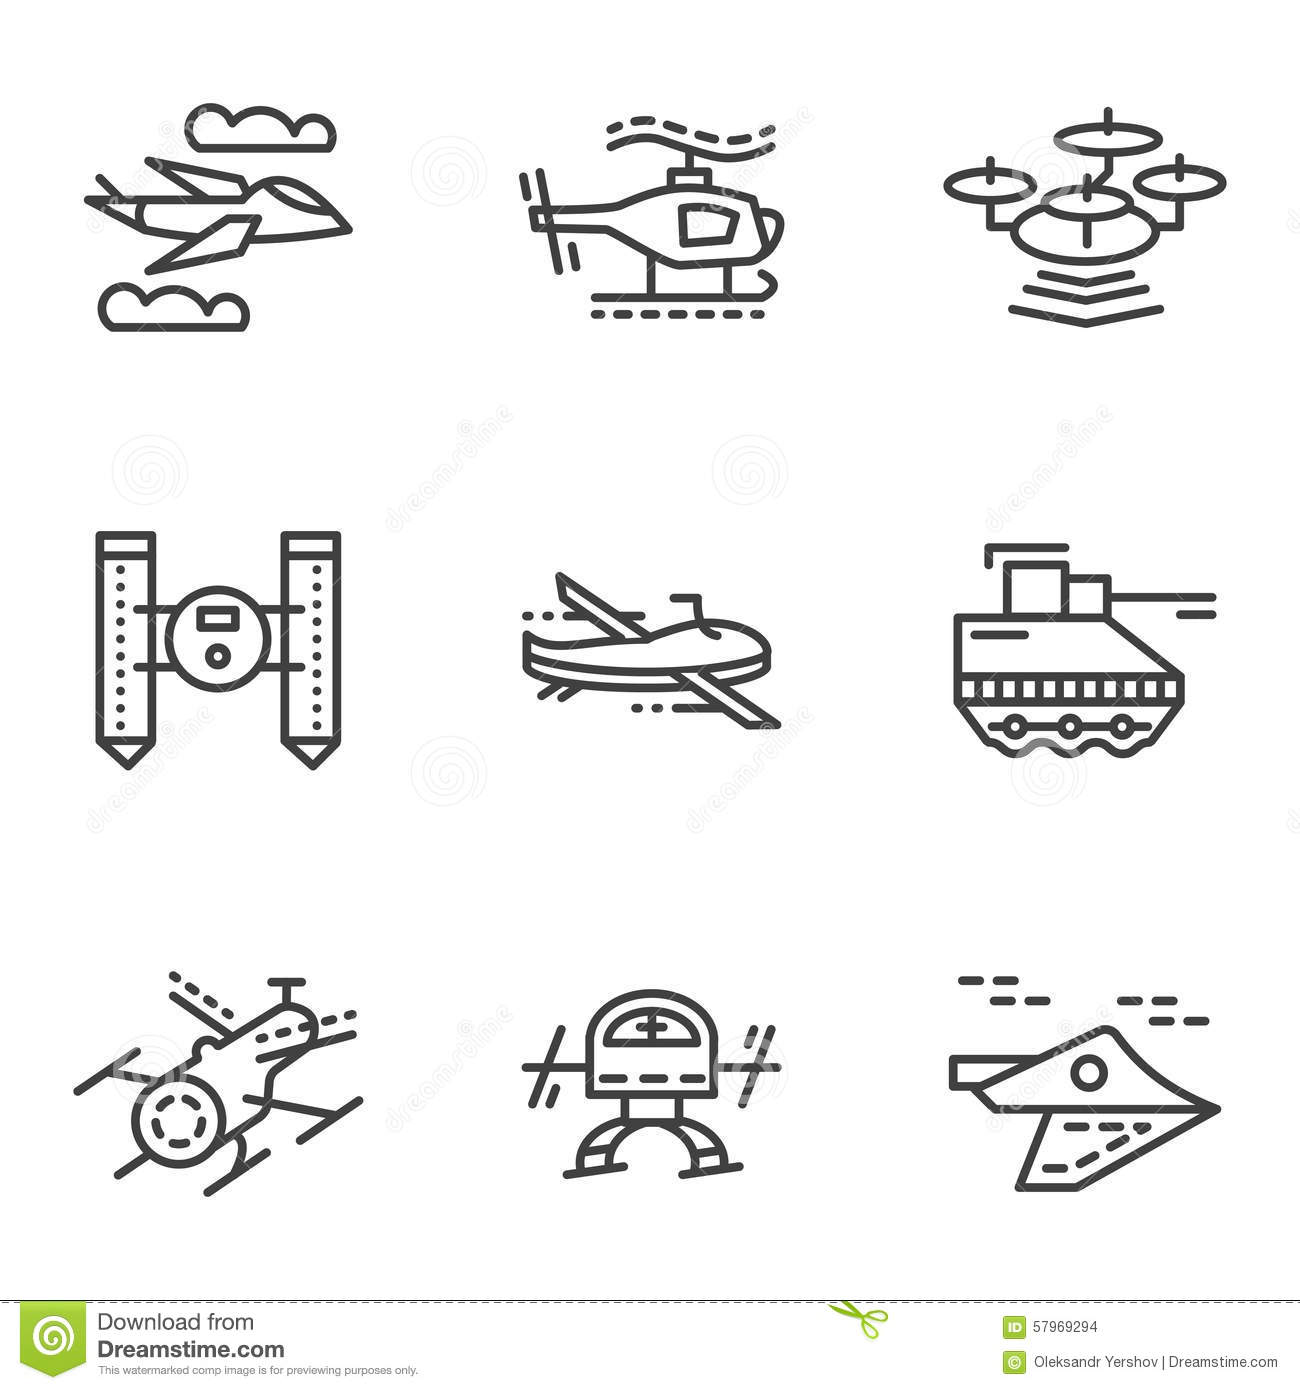 wireless remote control helicopter with Stock Illustration Military Drones Simple Line Icons Set Black Unmanned Robots Spy Research Territory Design Elements Business Image57969294 on Photo White Quadrocopter Black Background additionally 32366764586 besides Watch likewise Rc Helicopter Remote Control Circuit Diagram Pdf likewise Jigsaw Puzzles Hobbies.